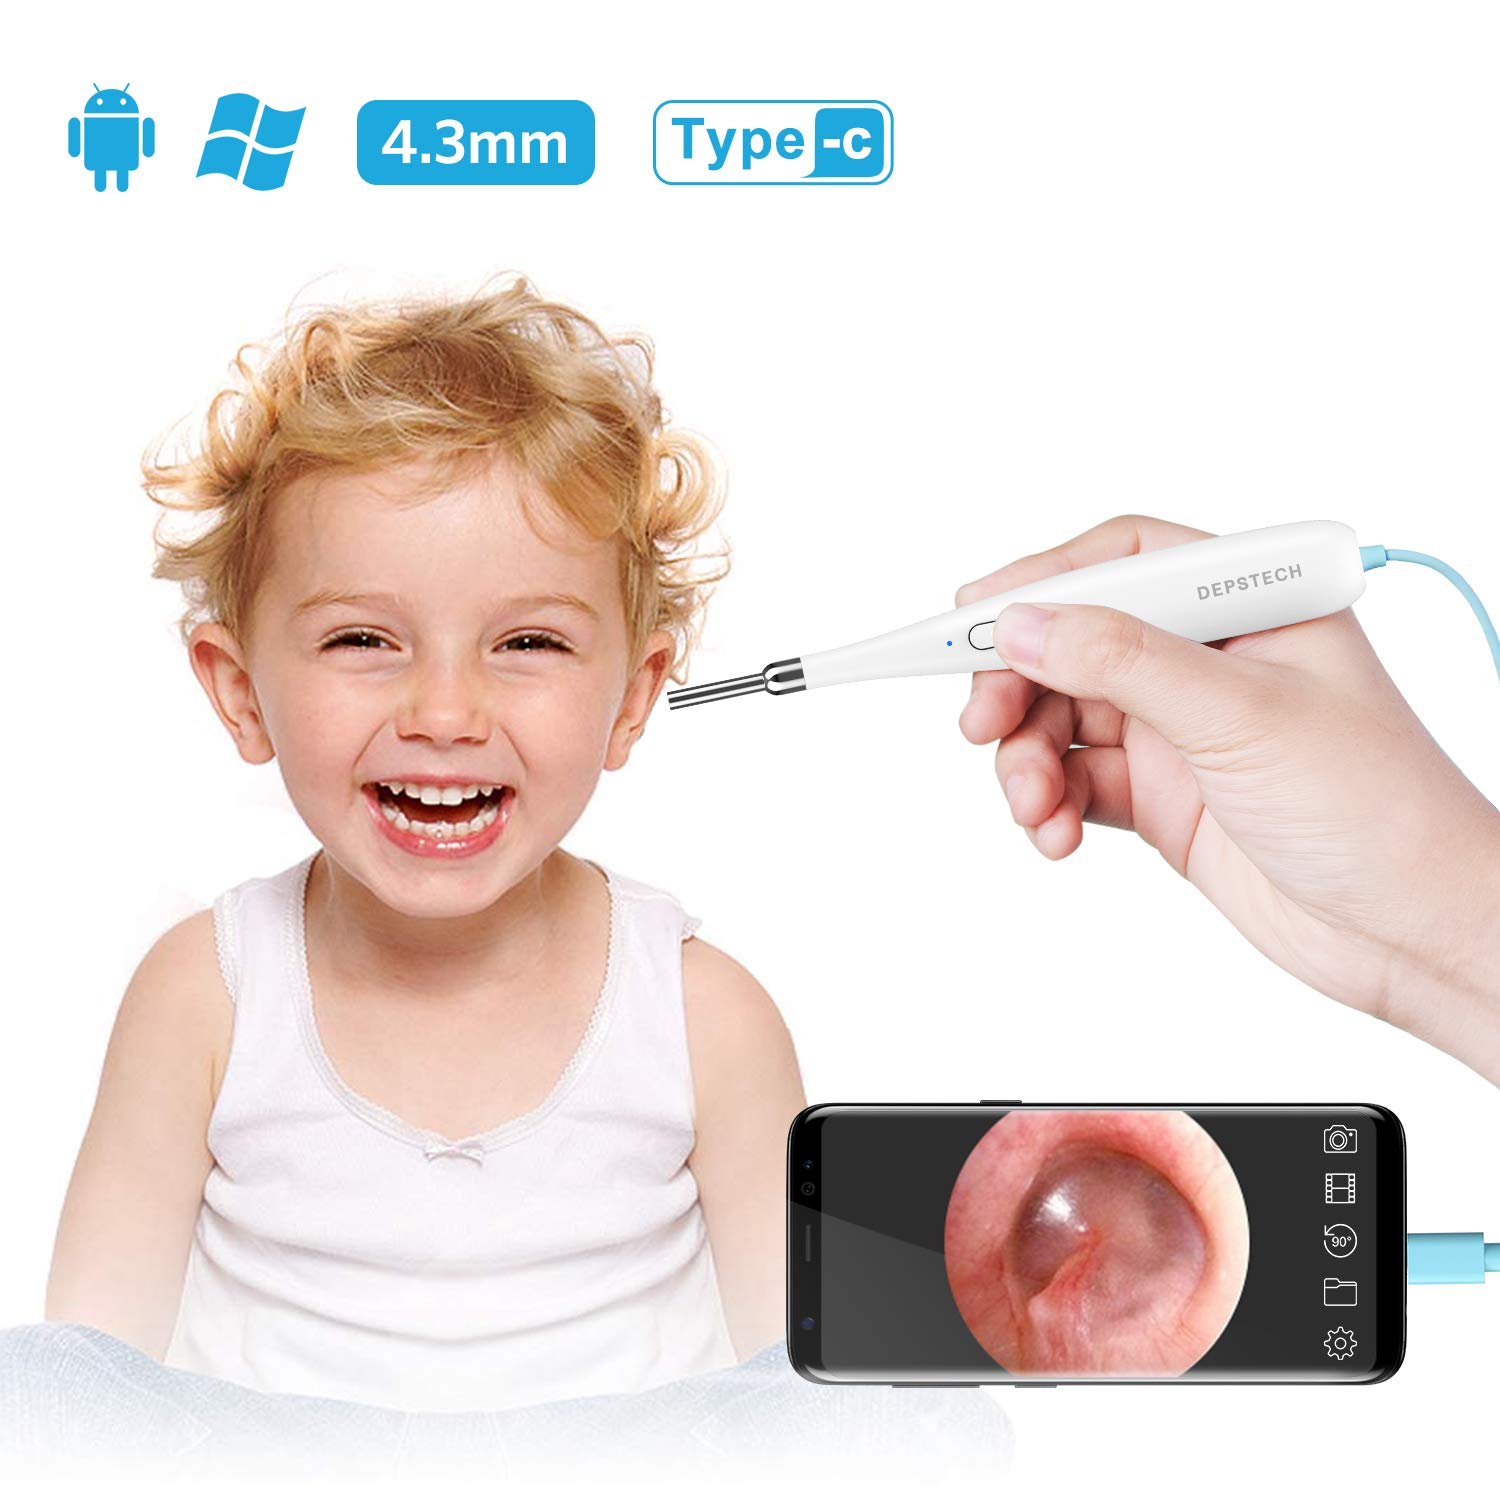 DEPSTECH 4.3mm USB Otoscope, Ultra-Thin HD Ear Scope Camera with 6 Adjustable LED Lights, Digital Audiology Inspection Endoscope for OTG Android Devices, Windows & Mac PC by DEPSTECH